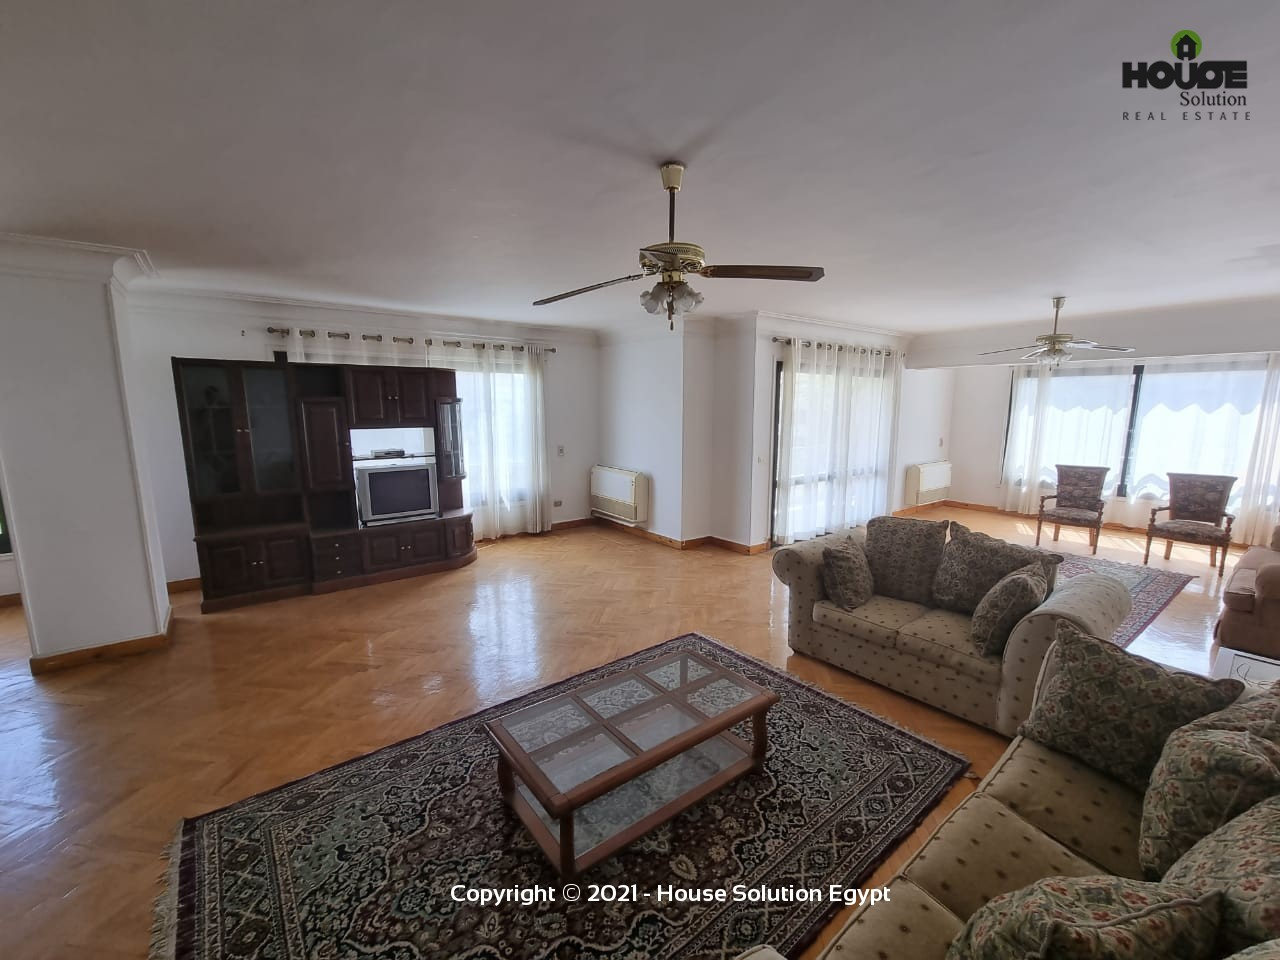 Spaciously Furnished Apartment For Rent In Prime Location Of Degla El Maadi  - 4939 Featured Image